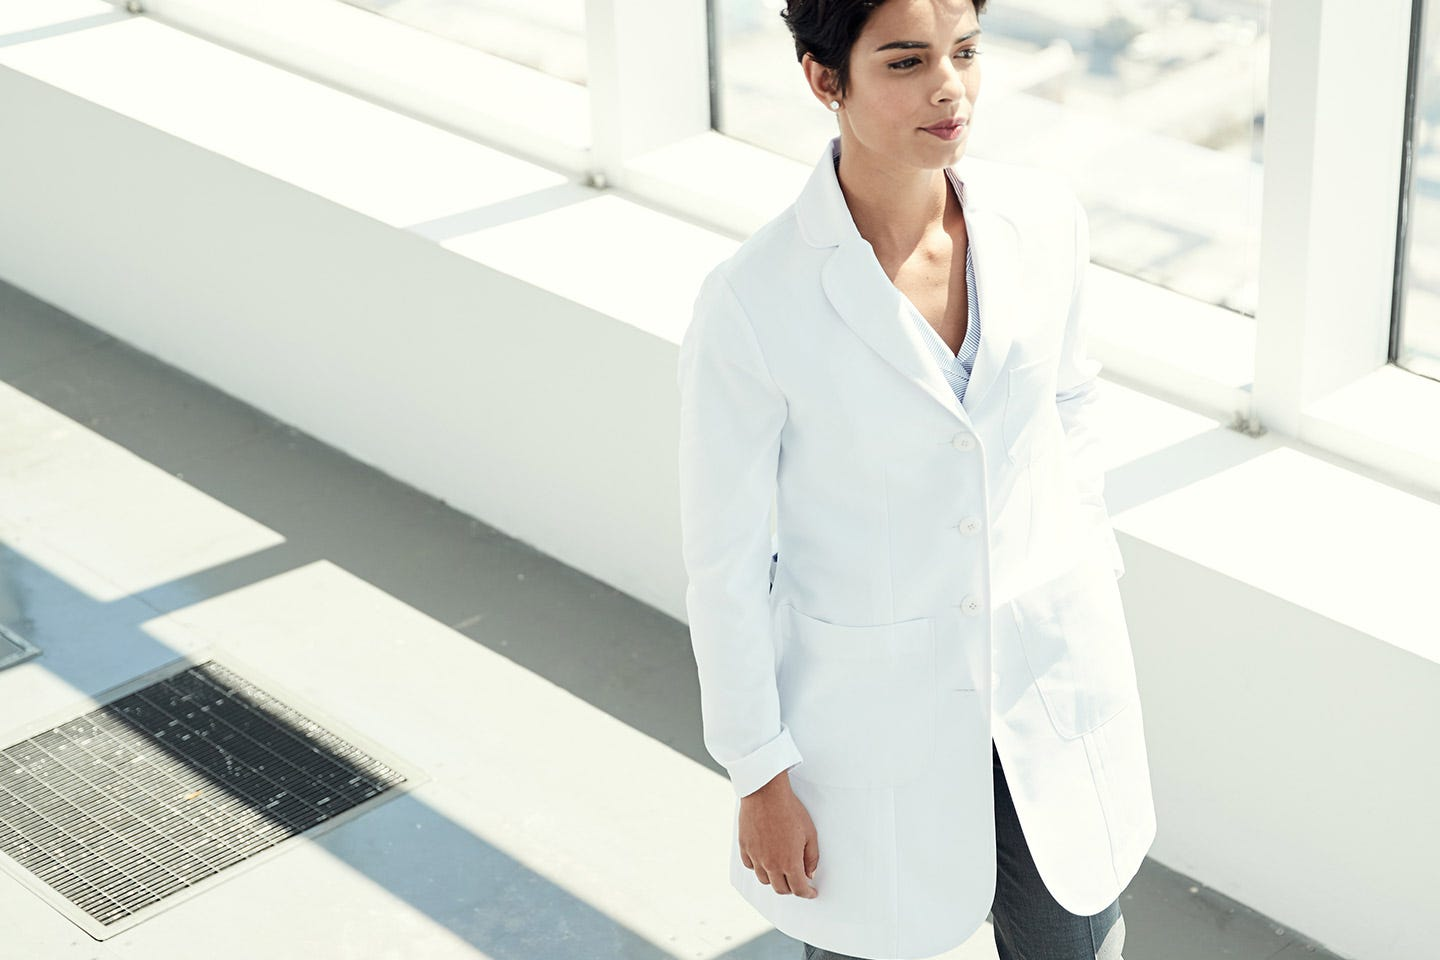 Ellody women's lab coat back